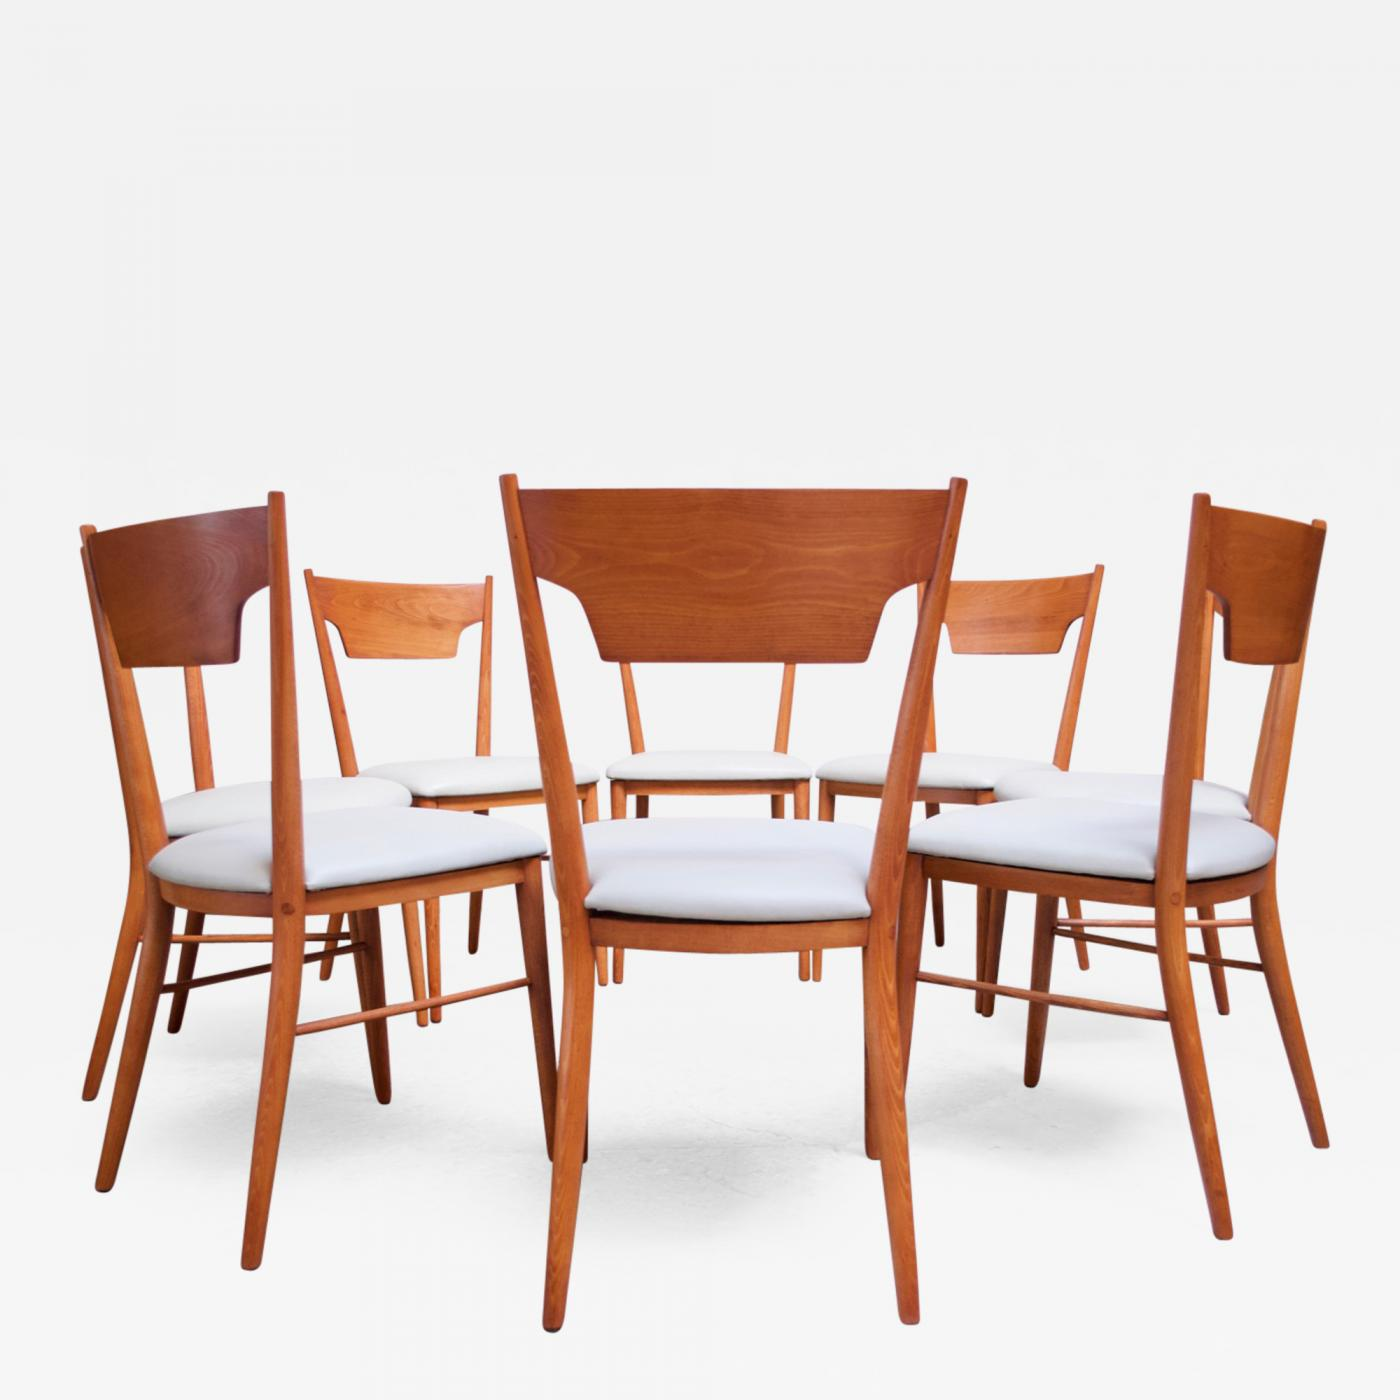 new arrival 8fd18 f1a41 Paul McCobb - Set of Eight Stained Maple Dining Chairs by Paul McCobb for  Perimeter